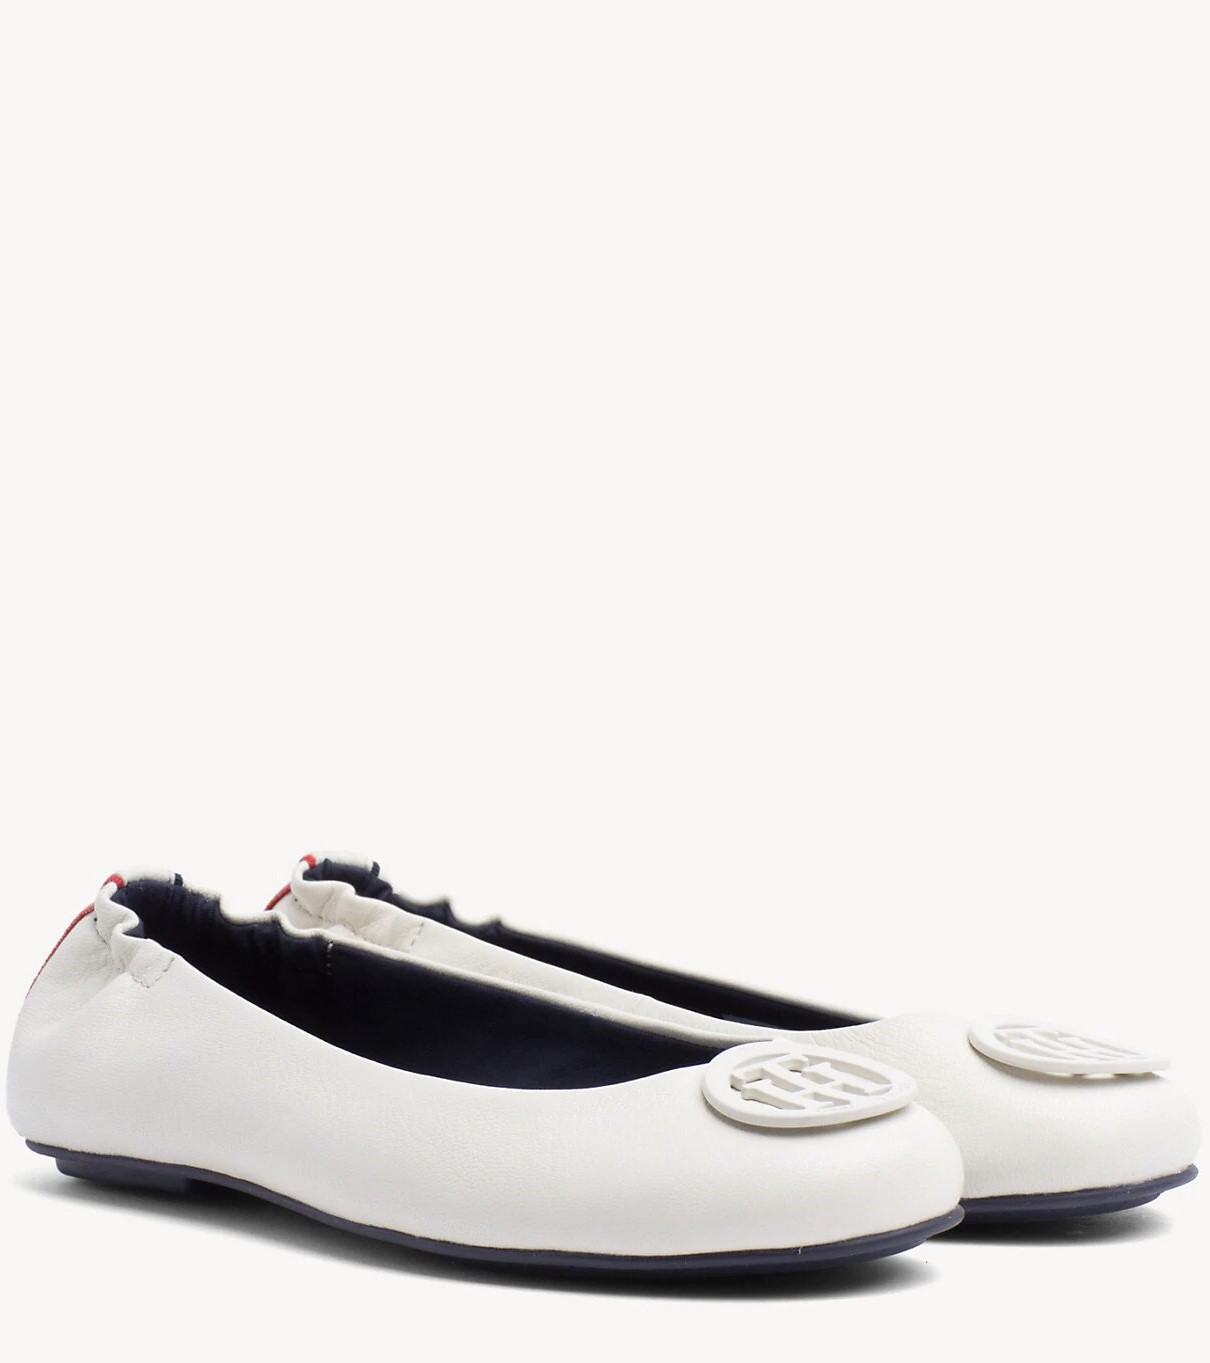 Tommy Hilfiger smetanové kožené baleríny Flexible Leather Ballerina Whisper White